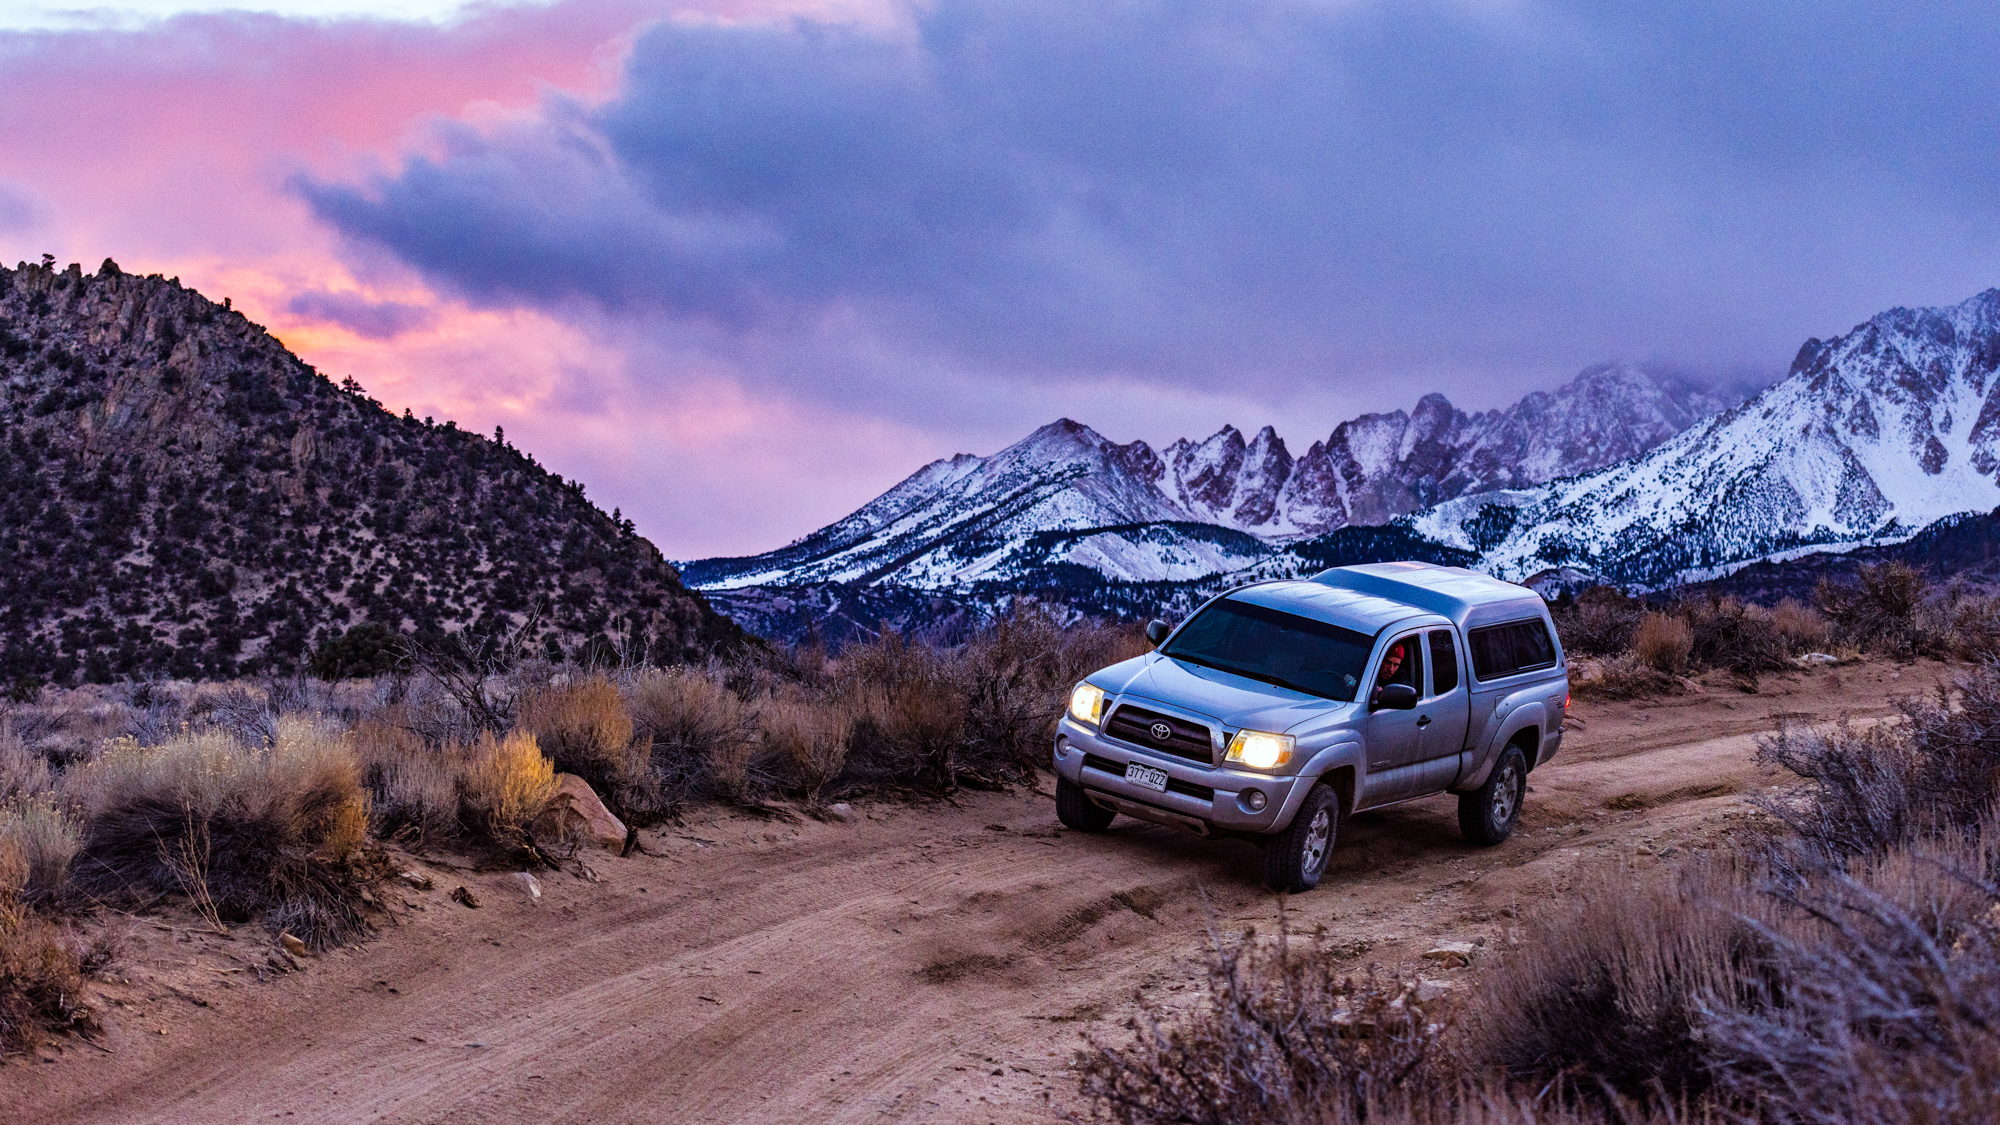 Off-roading in Bishop, California - Greg Mionske - Advertising and Editorial Photographer in Denver